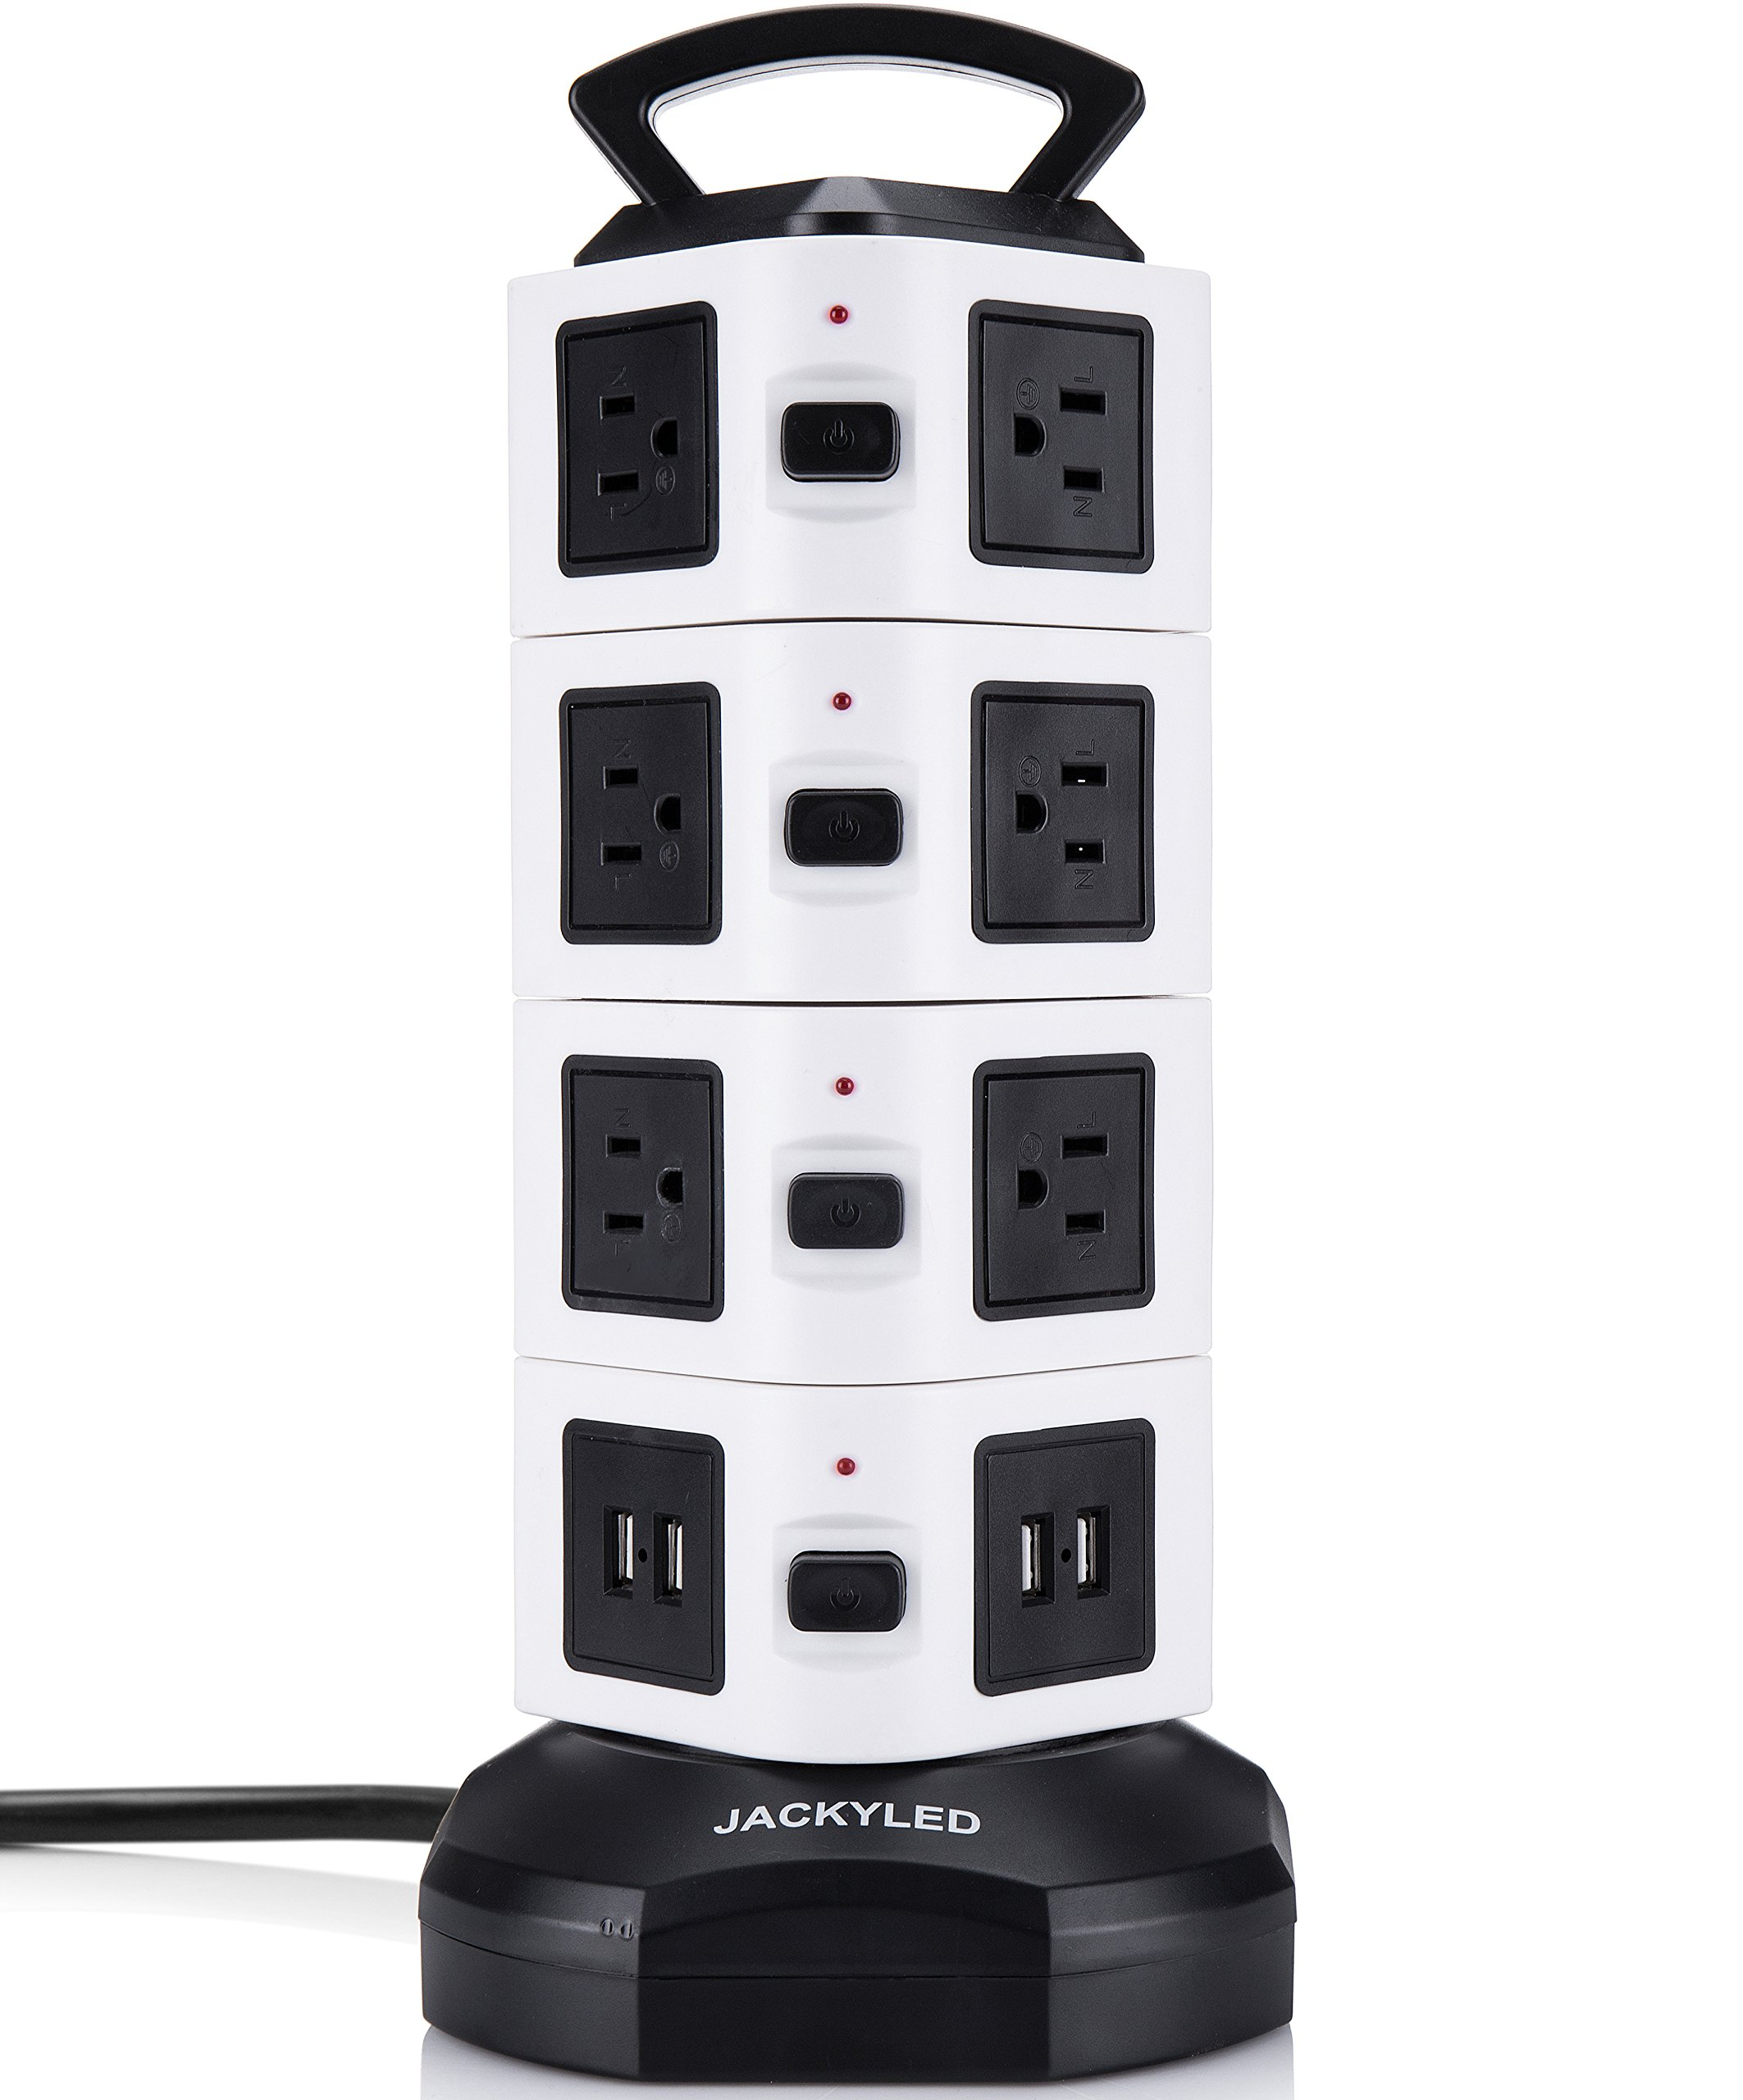 JACKYLED Power Strip - 14 Outlet Plugs with 4 USB Slot 6.5ft Cord Wire Extension 3000W Surge Protector Universal Socket Charging Station for PC Laptops Mobile Devices